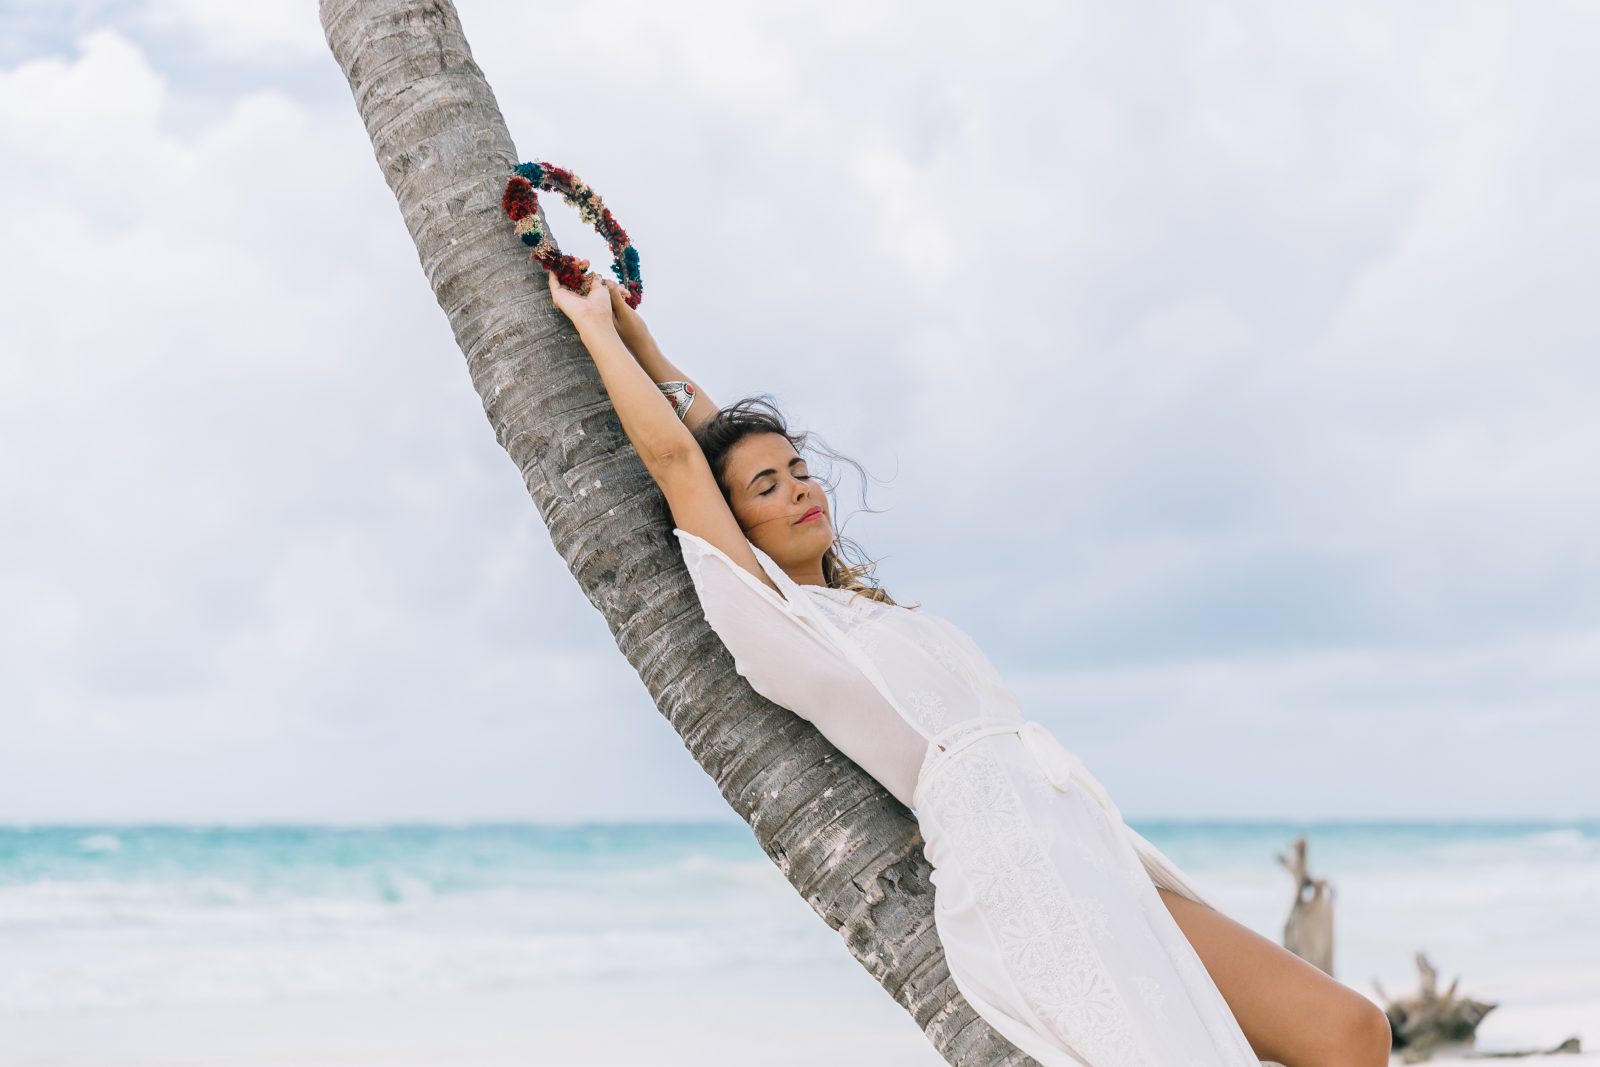 white_long_dress-boho_style-tulum_mexico-beach-floral_crown-outfit-collage_vintage-23